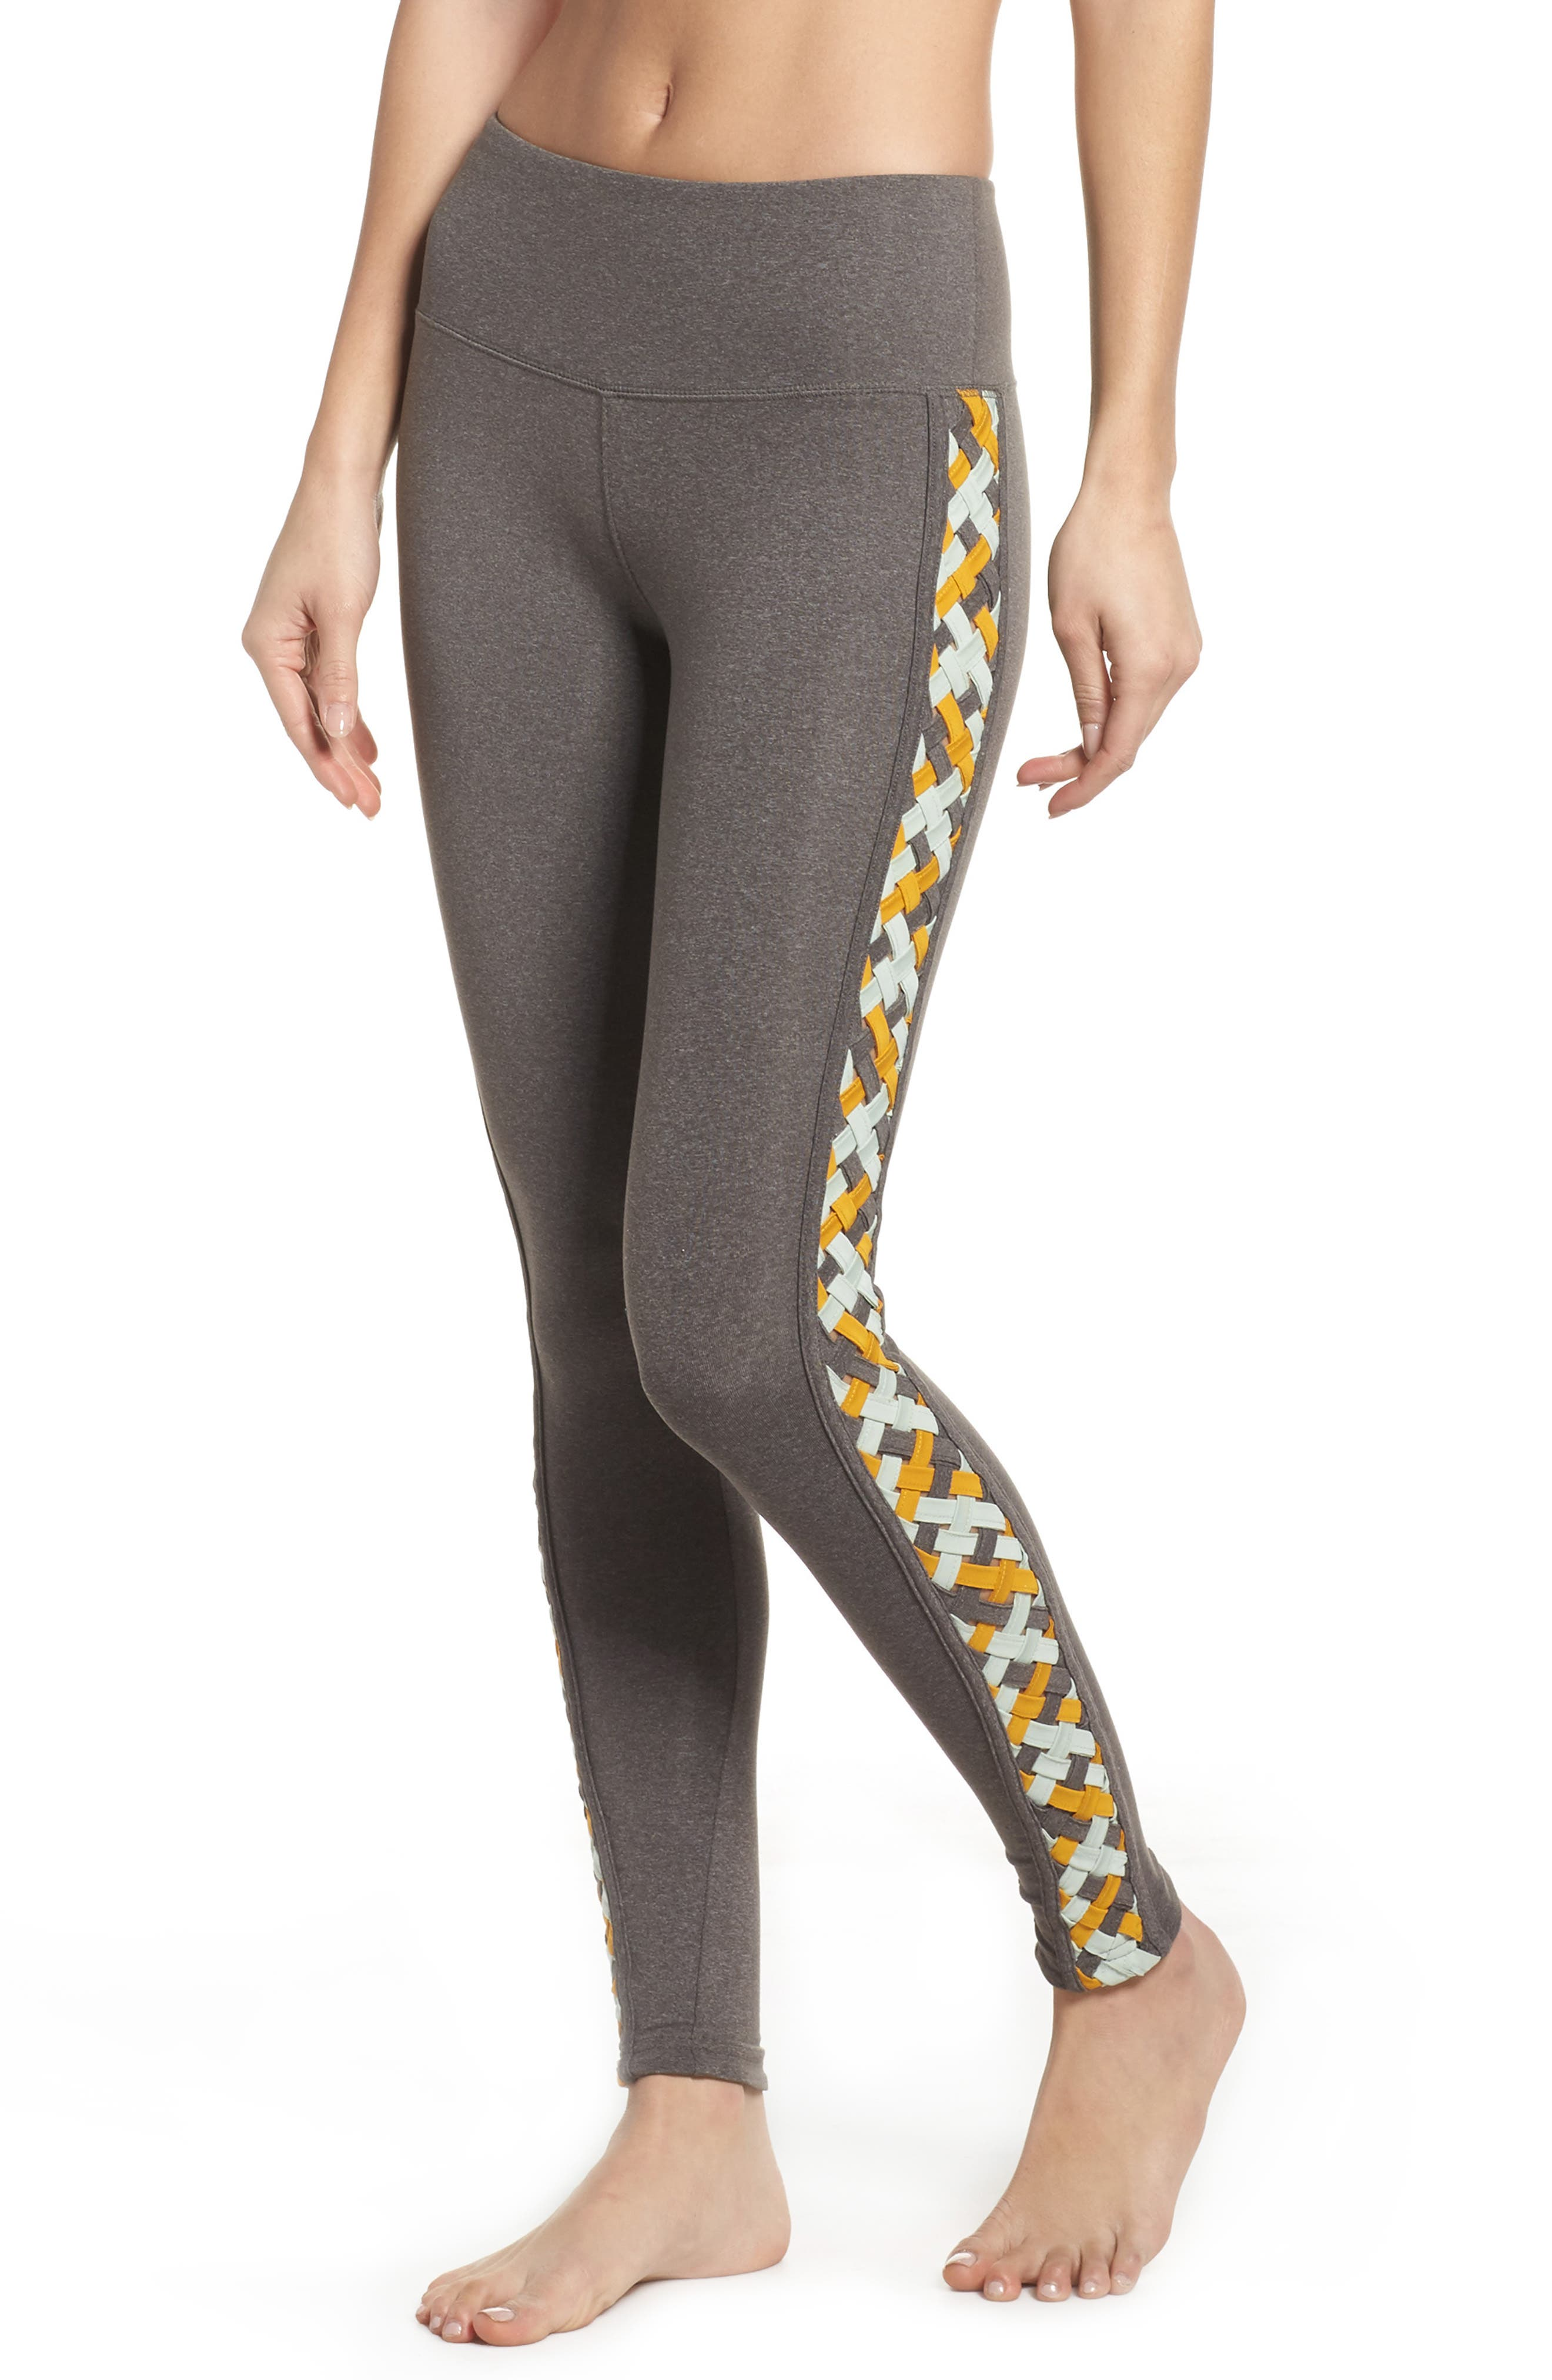 Free People Vision Leggings,                             Main thumbnail 1, color,                             058